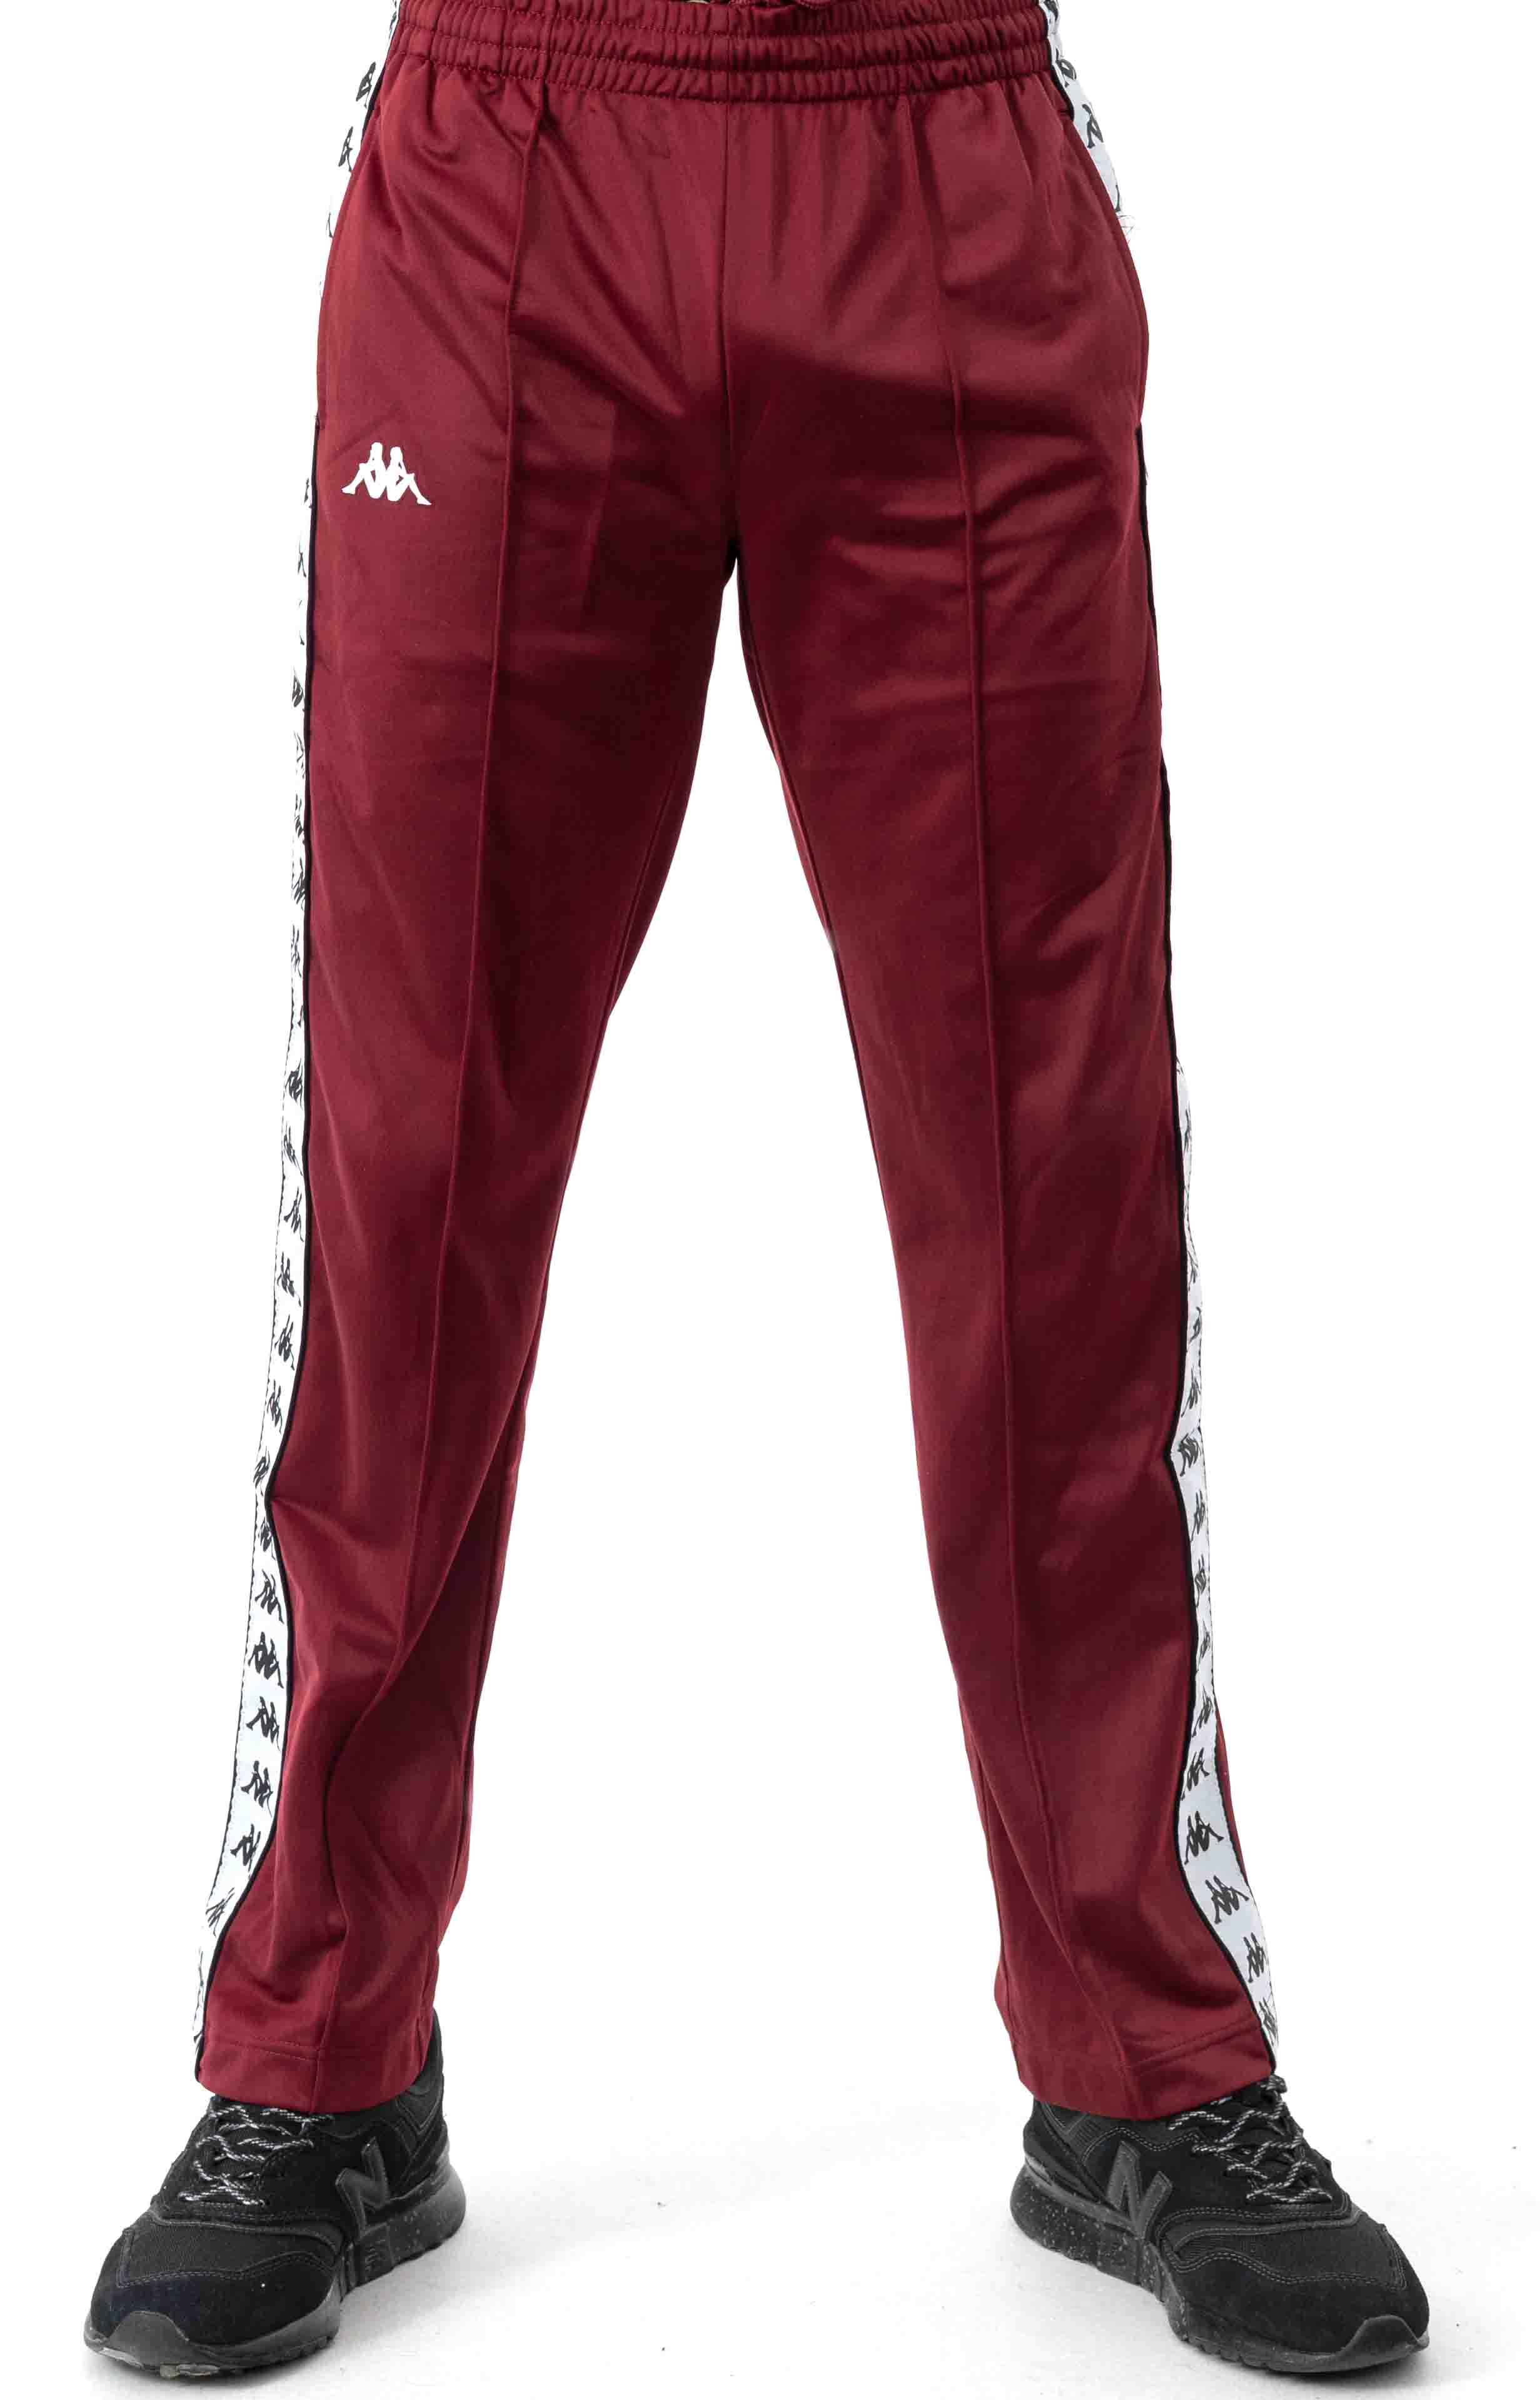 222 Banda Astoriazz Trackpant - Red Dahlia/White 2